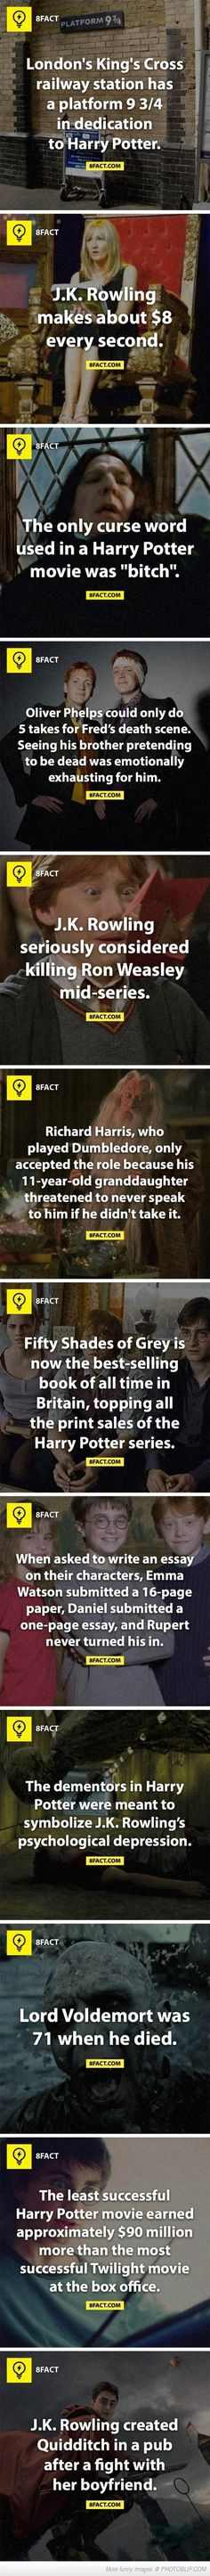 The one about the curse words is wrong in the first one Malfoy said a few other words